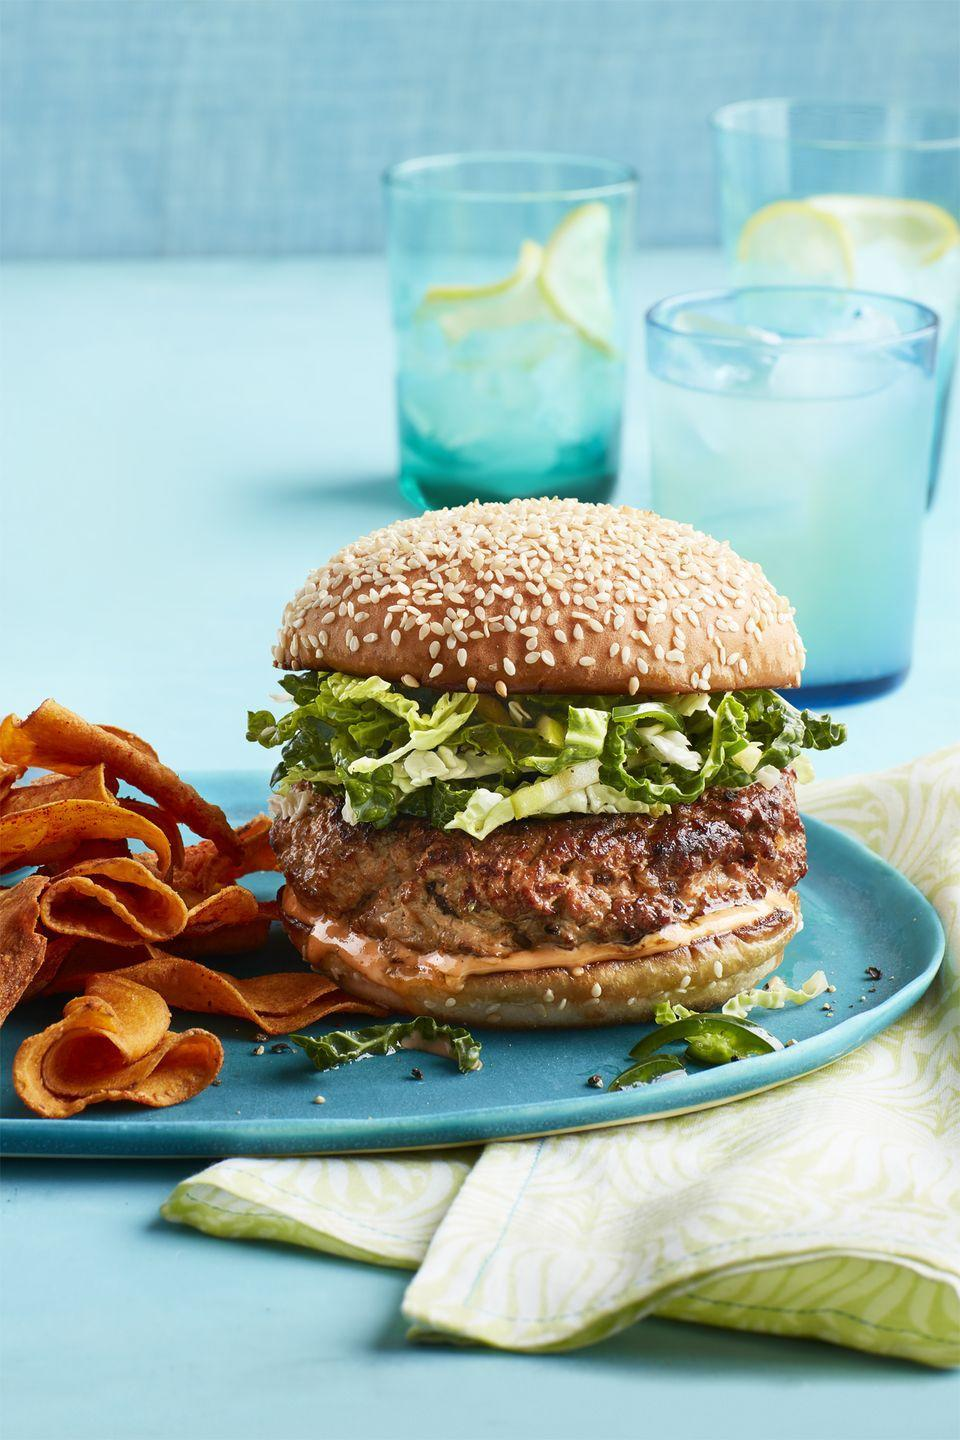 "<p>Packed with good-for-you spices, these turkey patties, topped with a sweet and crunchy apple and cabbage slaw, are a healthy alternative to <a href=""https://www.heart.org/en/healthy-living/healthy-eating/eat-smart/nutrition-basics/meat-poultry-and-fish-picking-healthy-proteins"" rel=""nofollow noopener"" target=""_blank"" data-ylk=""slk:red meat"" class=""link rapid-noclick-resp"">red meat</a>.</p><p><a href=""https://www.womansday.com/food-recipes/food-drinks/recipes/a59376/turkey-burgers-slaw-sweet-potato-chips/"" rel=""nofollow noopener"" target=""_blank"" data-ylk=""slk:Get the Turkey Burgers and Slaw with Sweet Potato Chips recipe."" class=""link rapid-noclick-resp""><em><strong>Get the Turkey Burgers and Slaw with Sweet Potato Chips recipe.</strong></em></a></p><p><b><a class=""link rapid-noclick-resp"" href=""https://www.amazon.com/Lavatools-PT12-Javelin-Thermometer-Chipotle/dp/B00GRFHXVQ/?tag=syn-yahoo-20&ascsubtag=%5Bartid%7C10070.g.2176%5Bsrc%7Cyahoo-us"" rel=""nofollow noopener"" target=""_blank"" data-ylk=""slk:SHOP INSTANT-READ THERMOMETERS"">SHOP INSTANT-READ THERMOMETERS</a></b></p>"